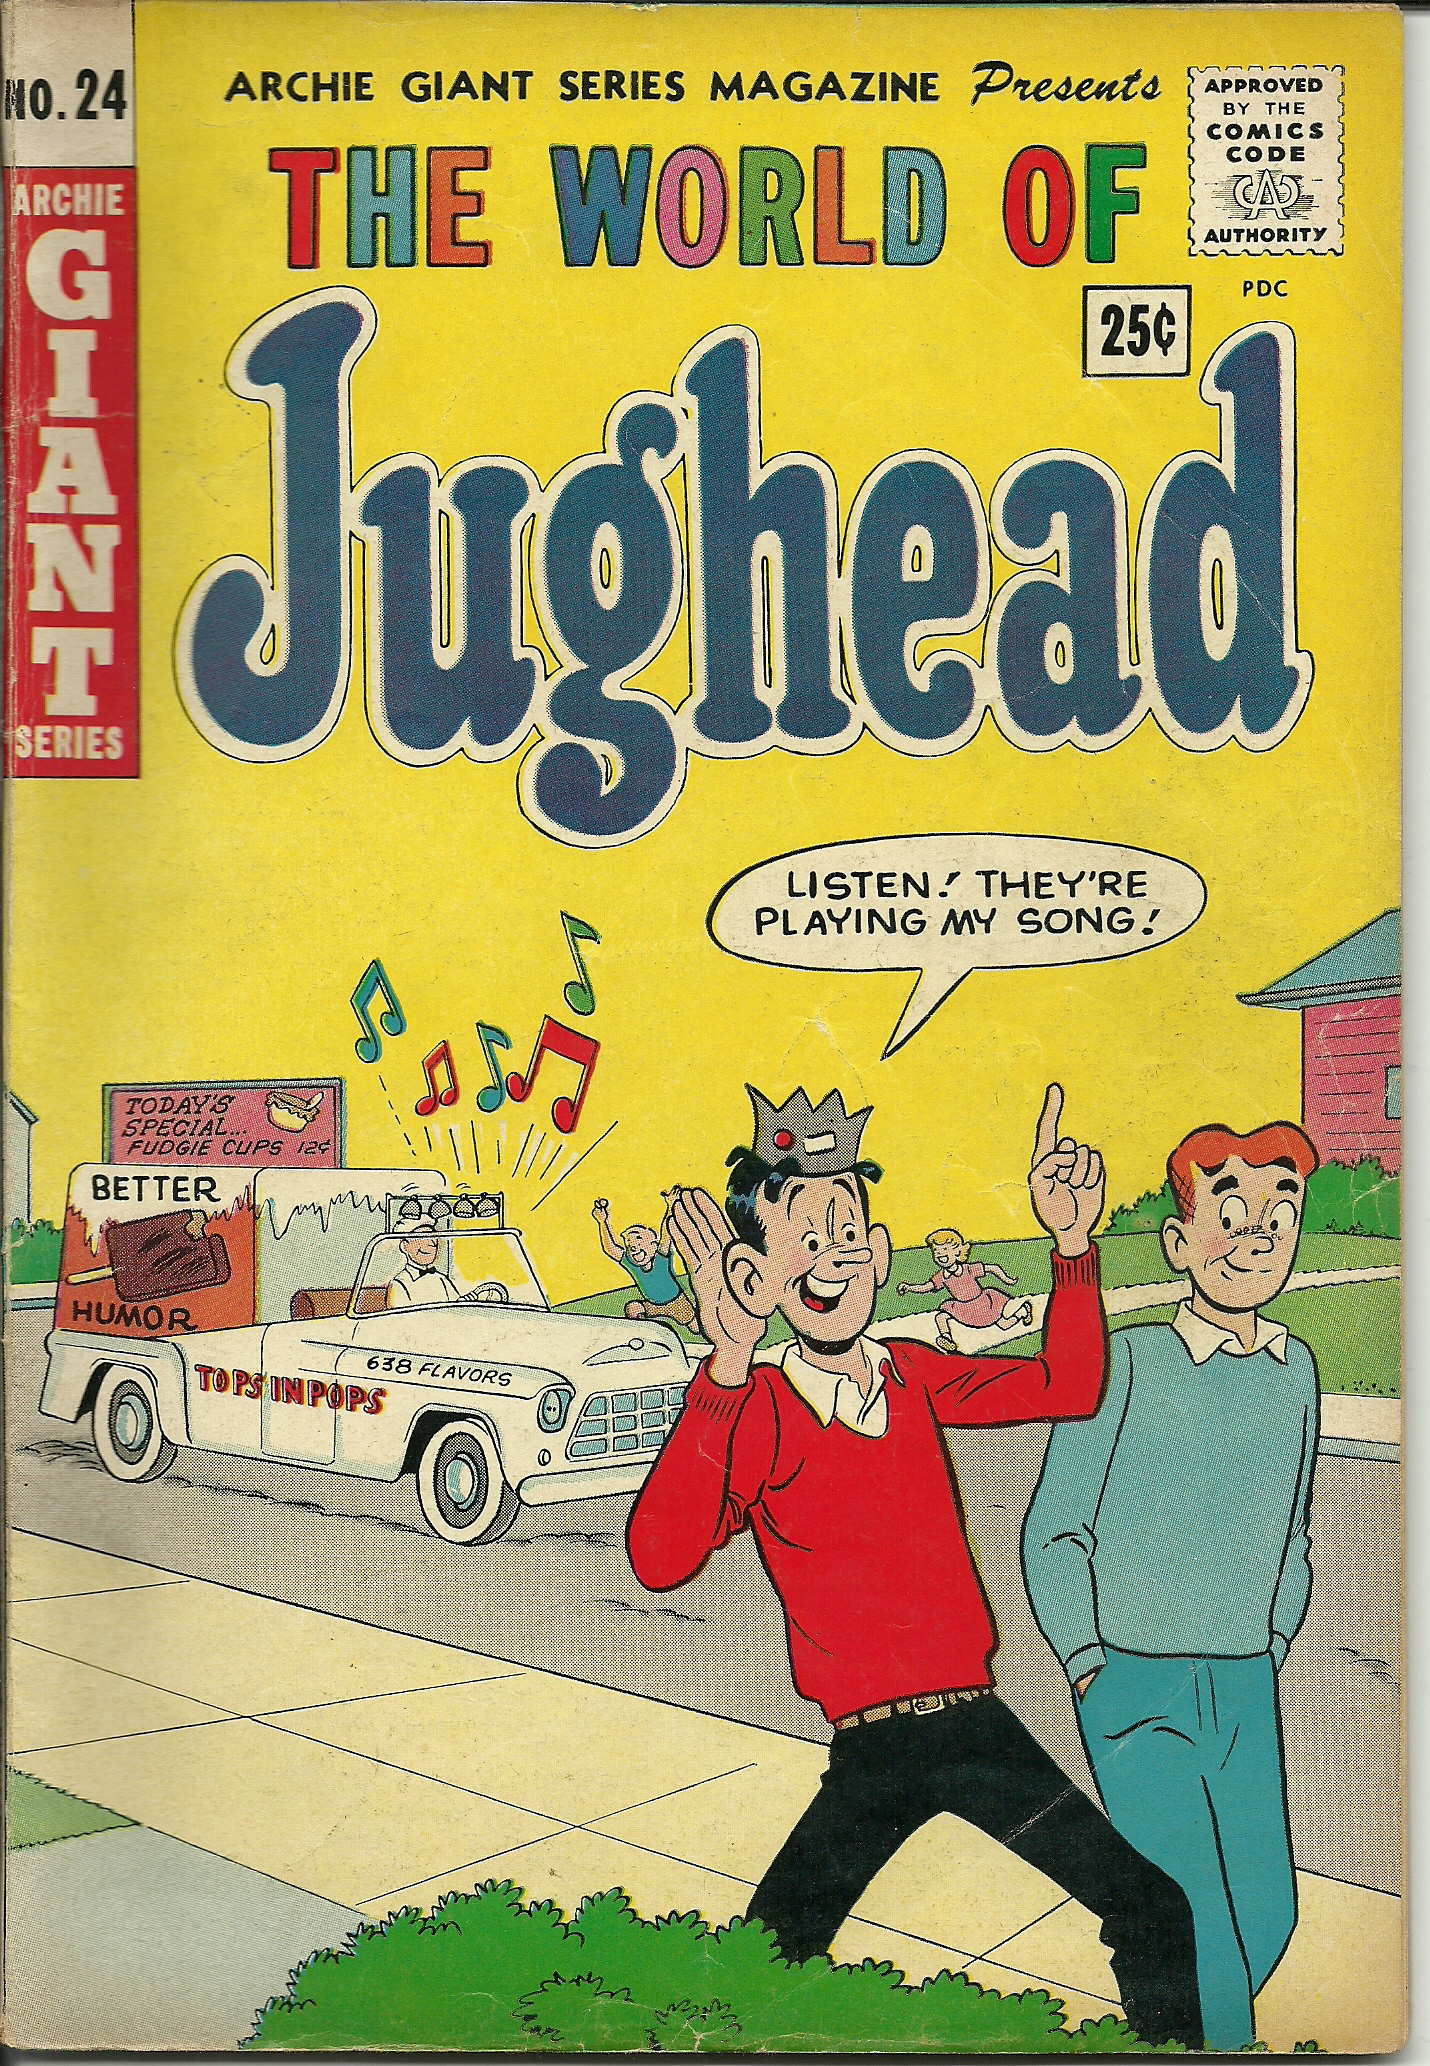 The World of Jughead, No. 24, December 1963. In good condition. All ...